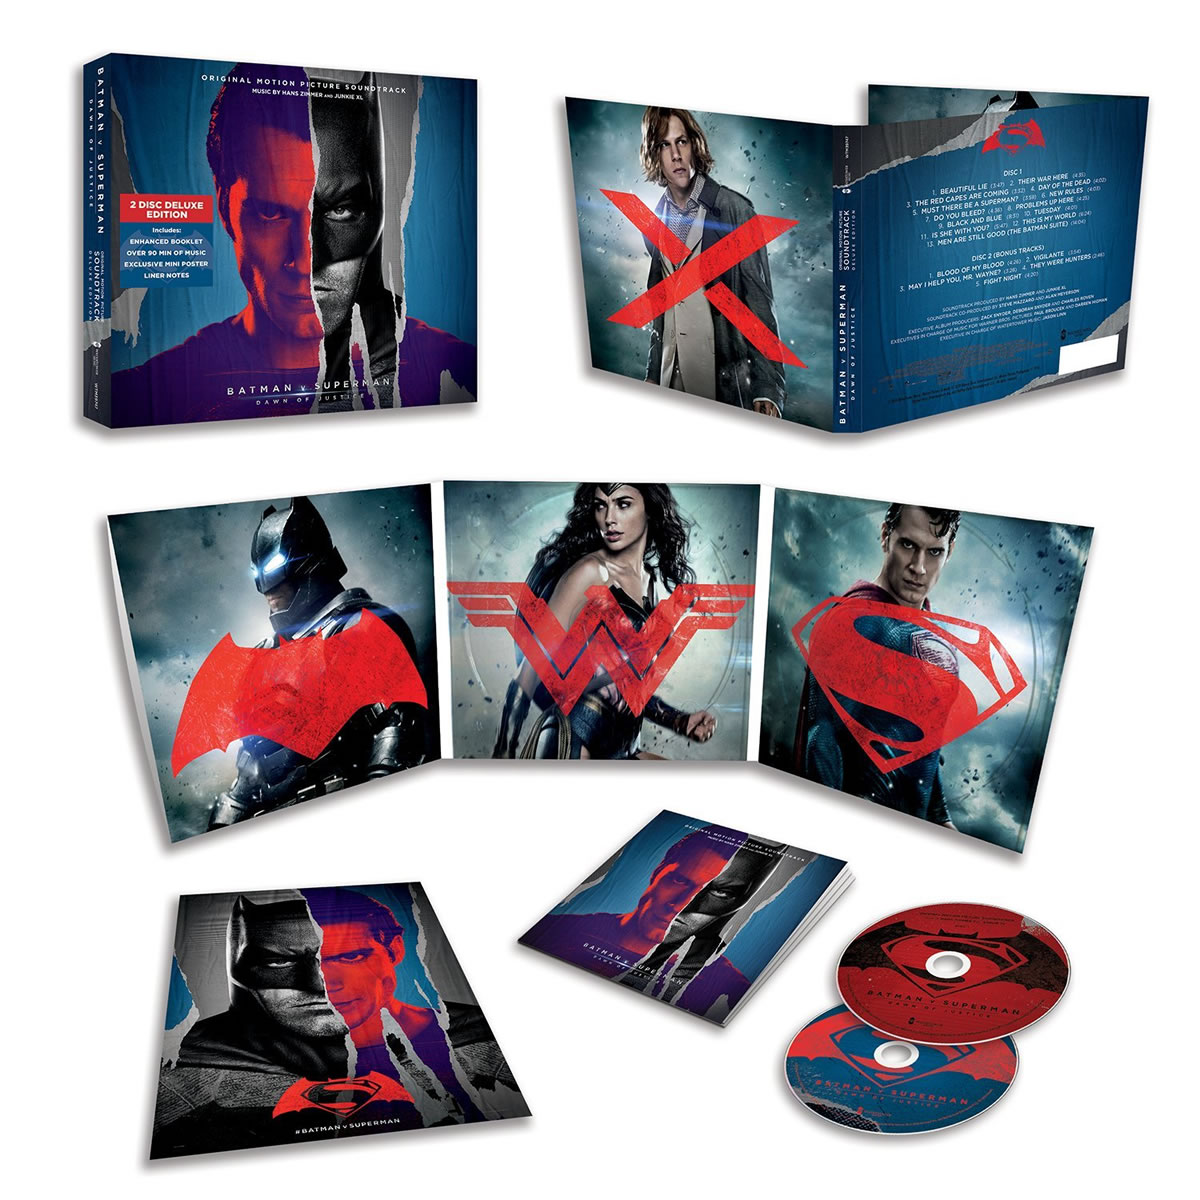 BATMAN V SUPERMAN: DAWN OF JUSTICE - THE ORIGINAL MOTION PICTURE SOUNDTRACK Deluxe Limited Edition (2 AUDIO CD)